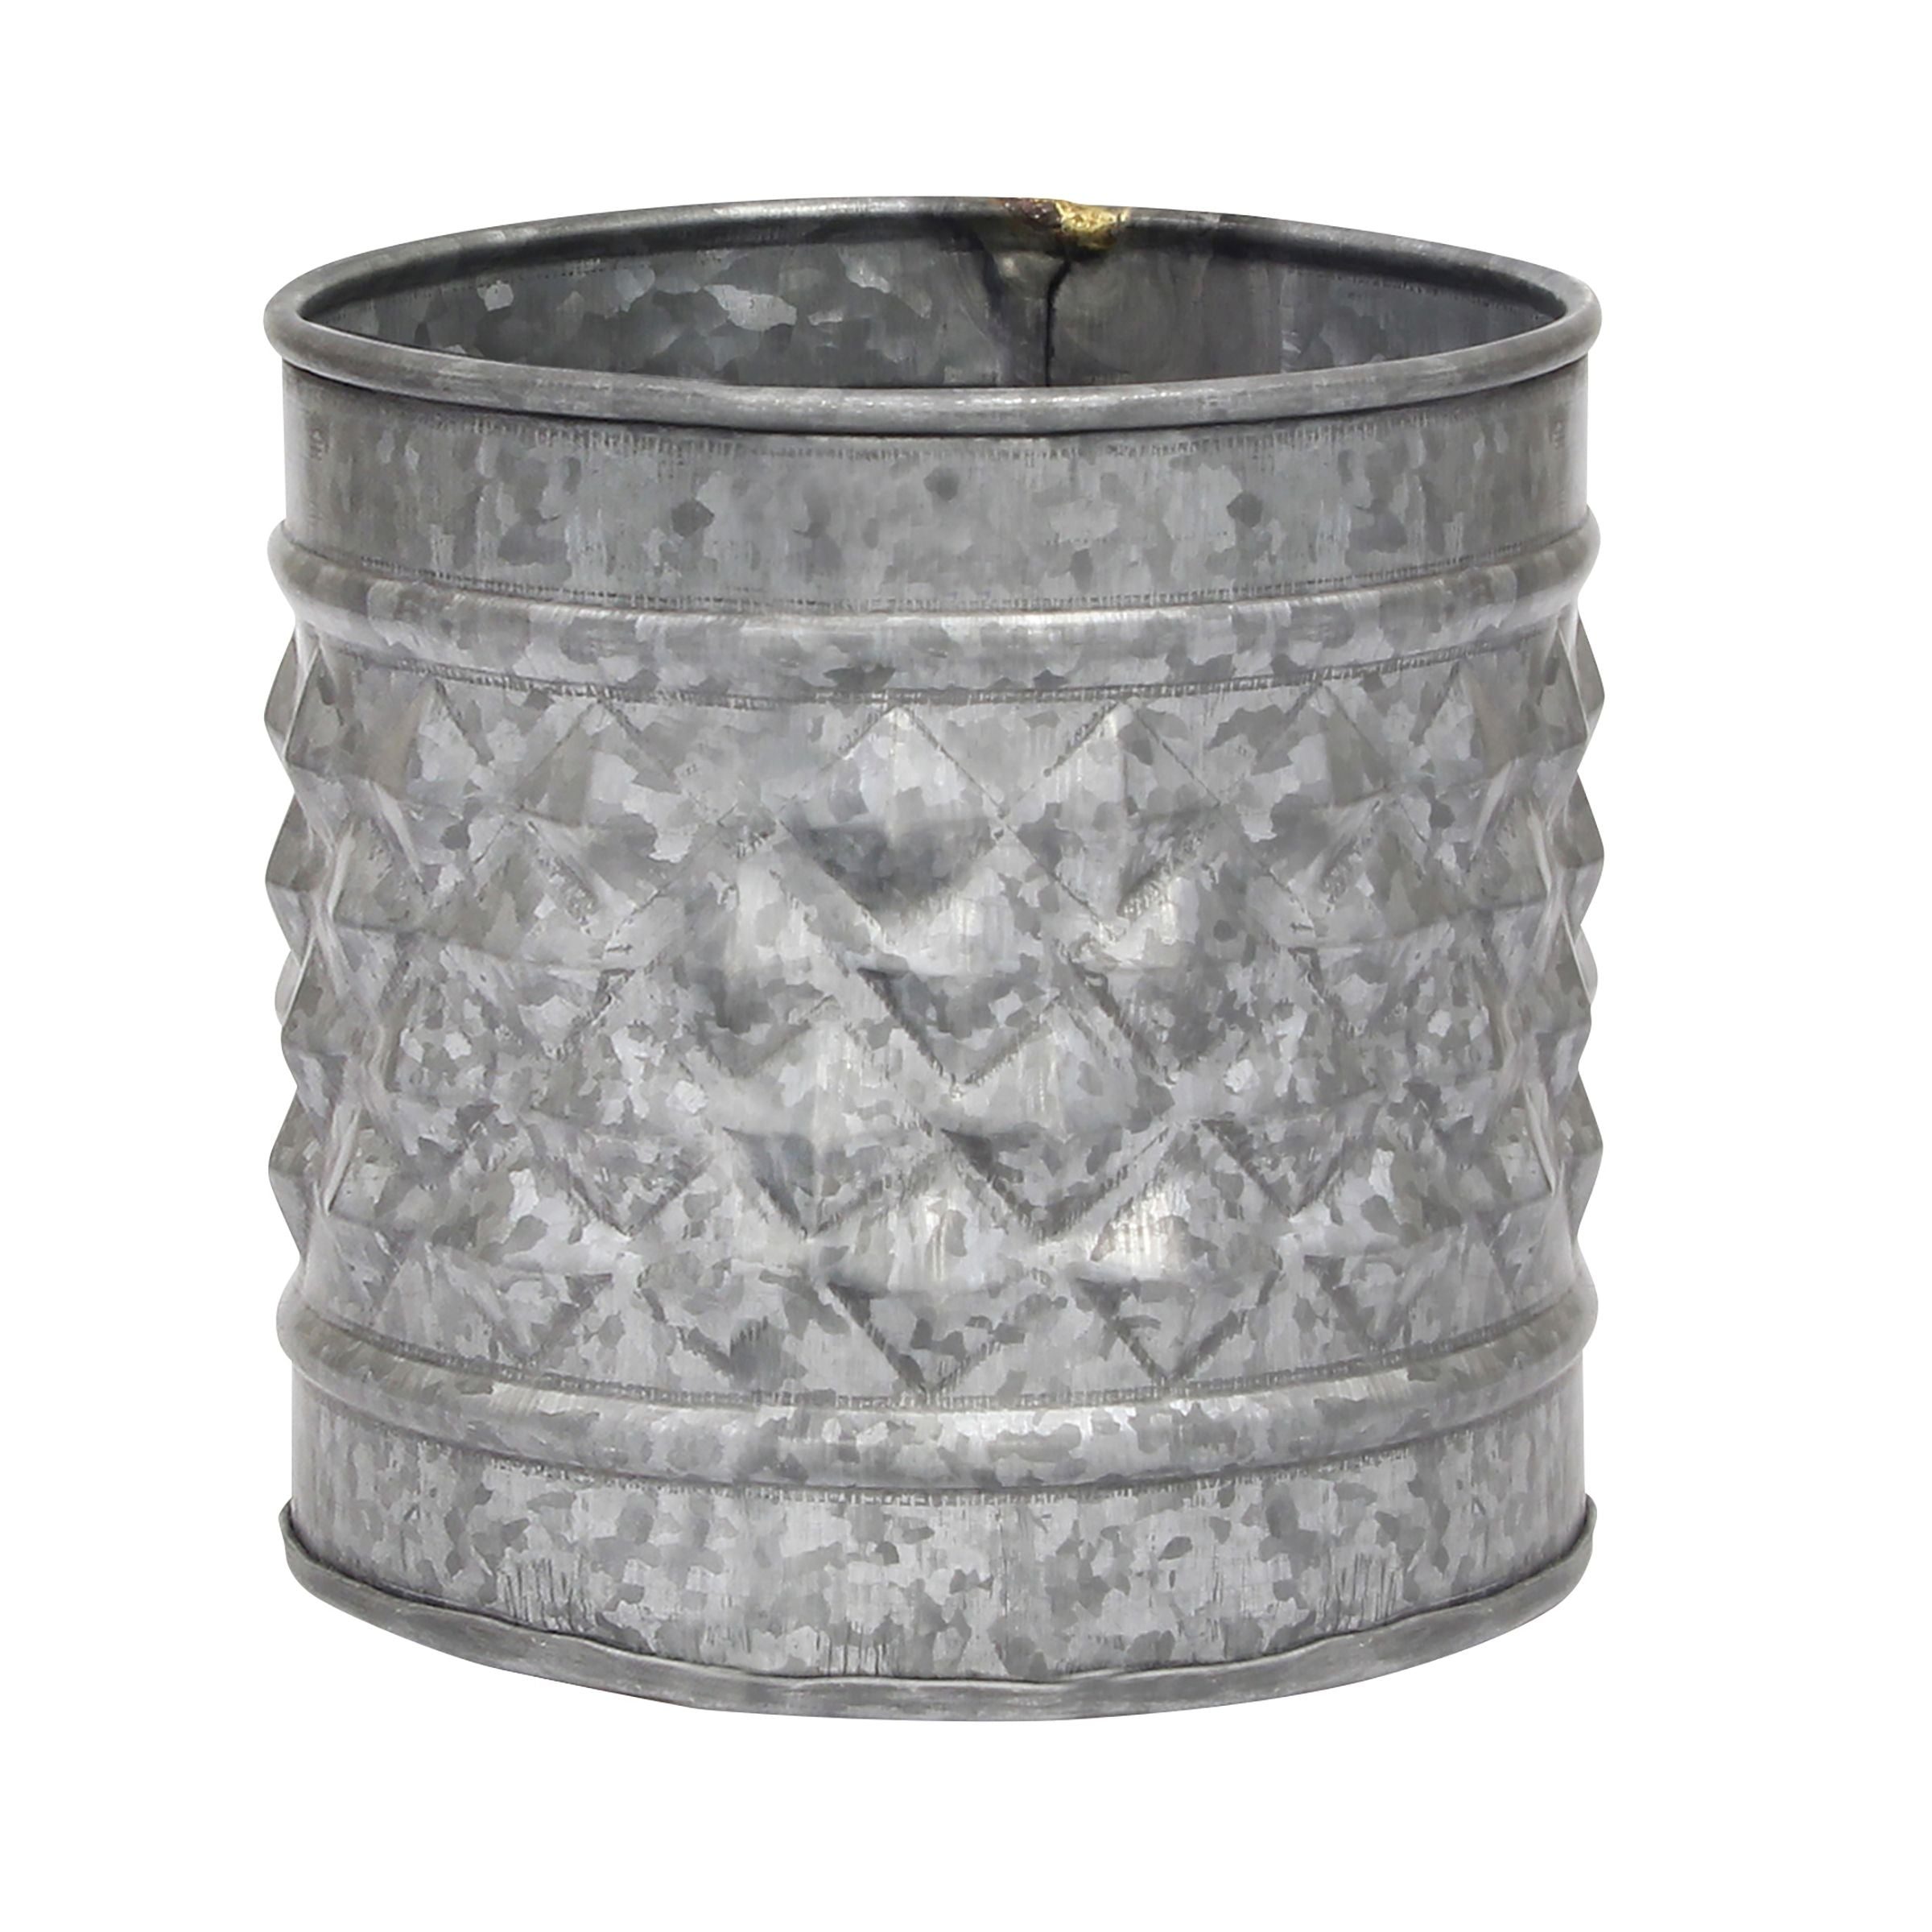 Galvanized Metal Planters | Stonebriar Collection